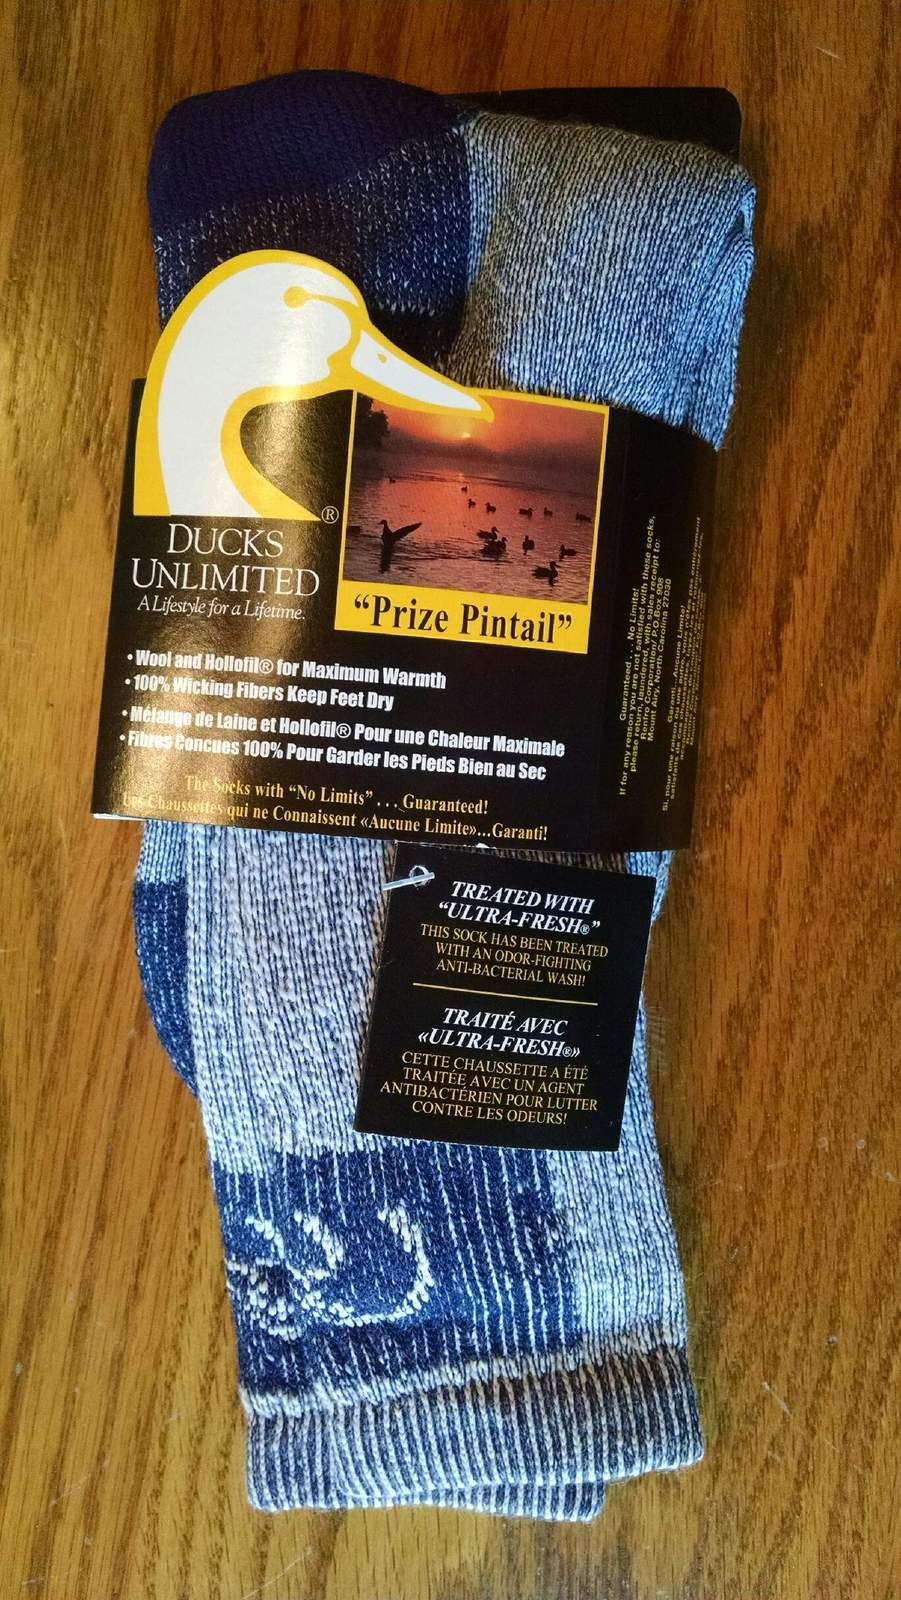 Two Pairs of Ducks Unlimited Prize Pintail Socks Light Blue Shoe Size 6 - 12